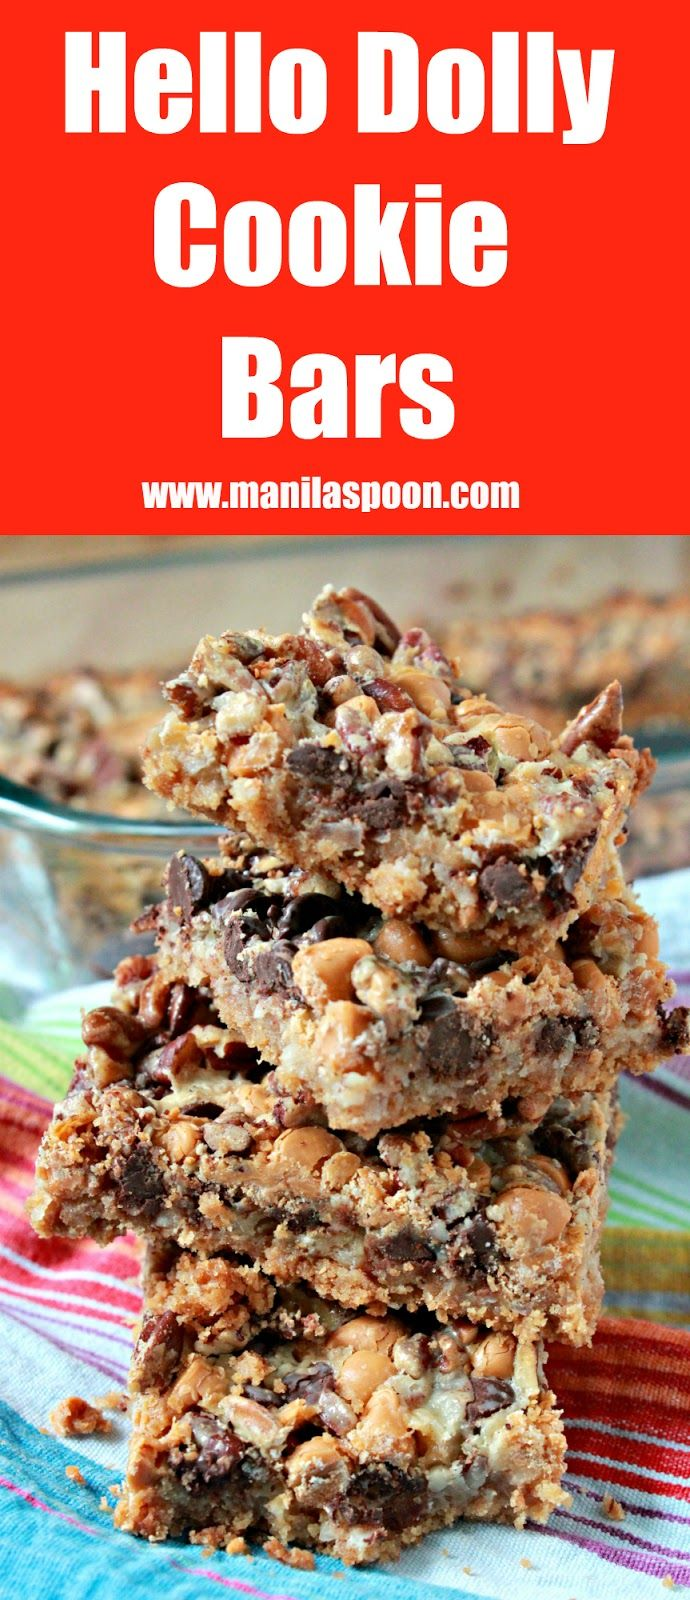 These cookie bars are truly so delicious and super easy to make!! With layers of graham crackers, coconut, pecans, butterscotch and choco chips - your tastebuds are in for a yummy treat!